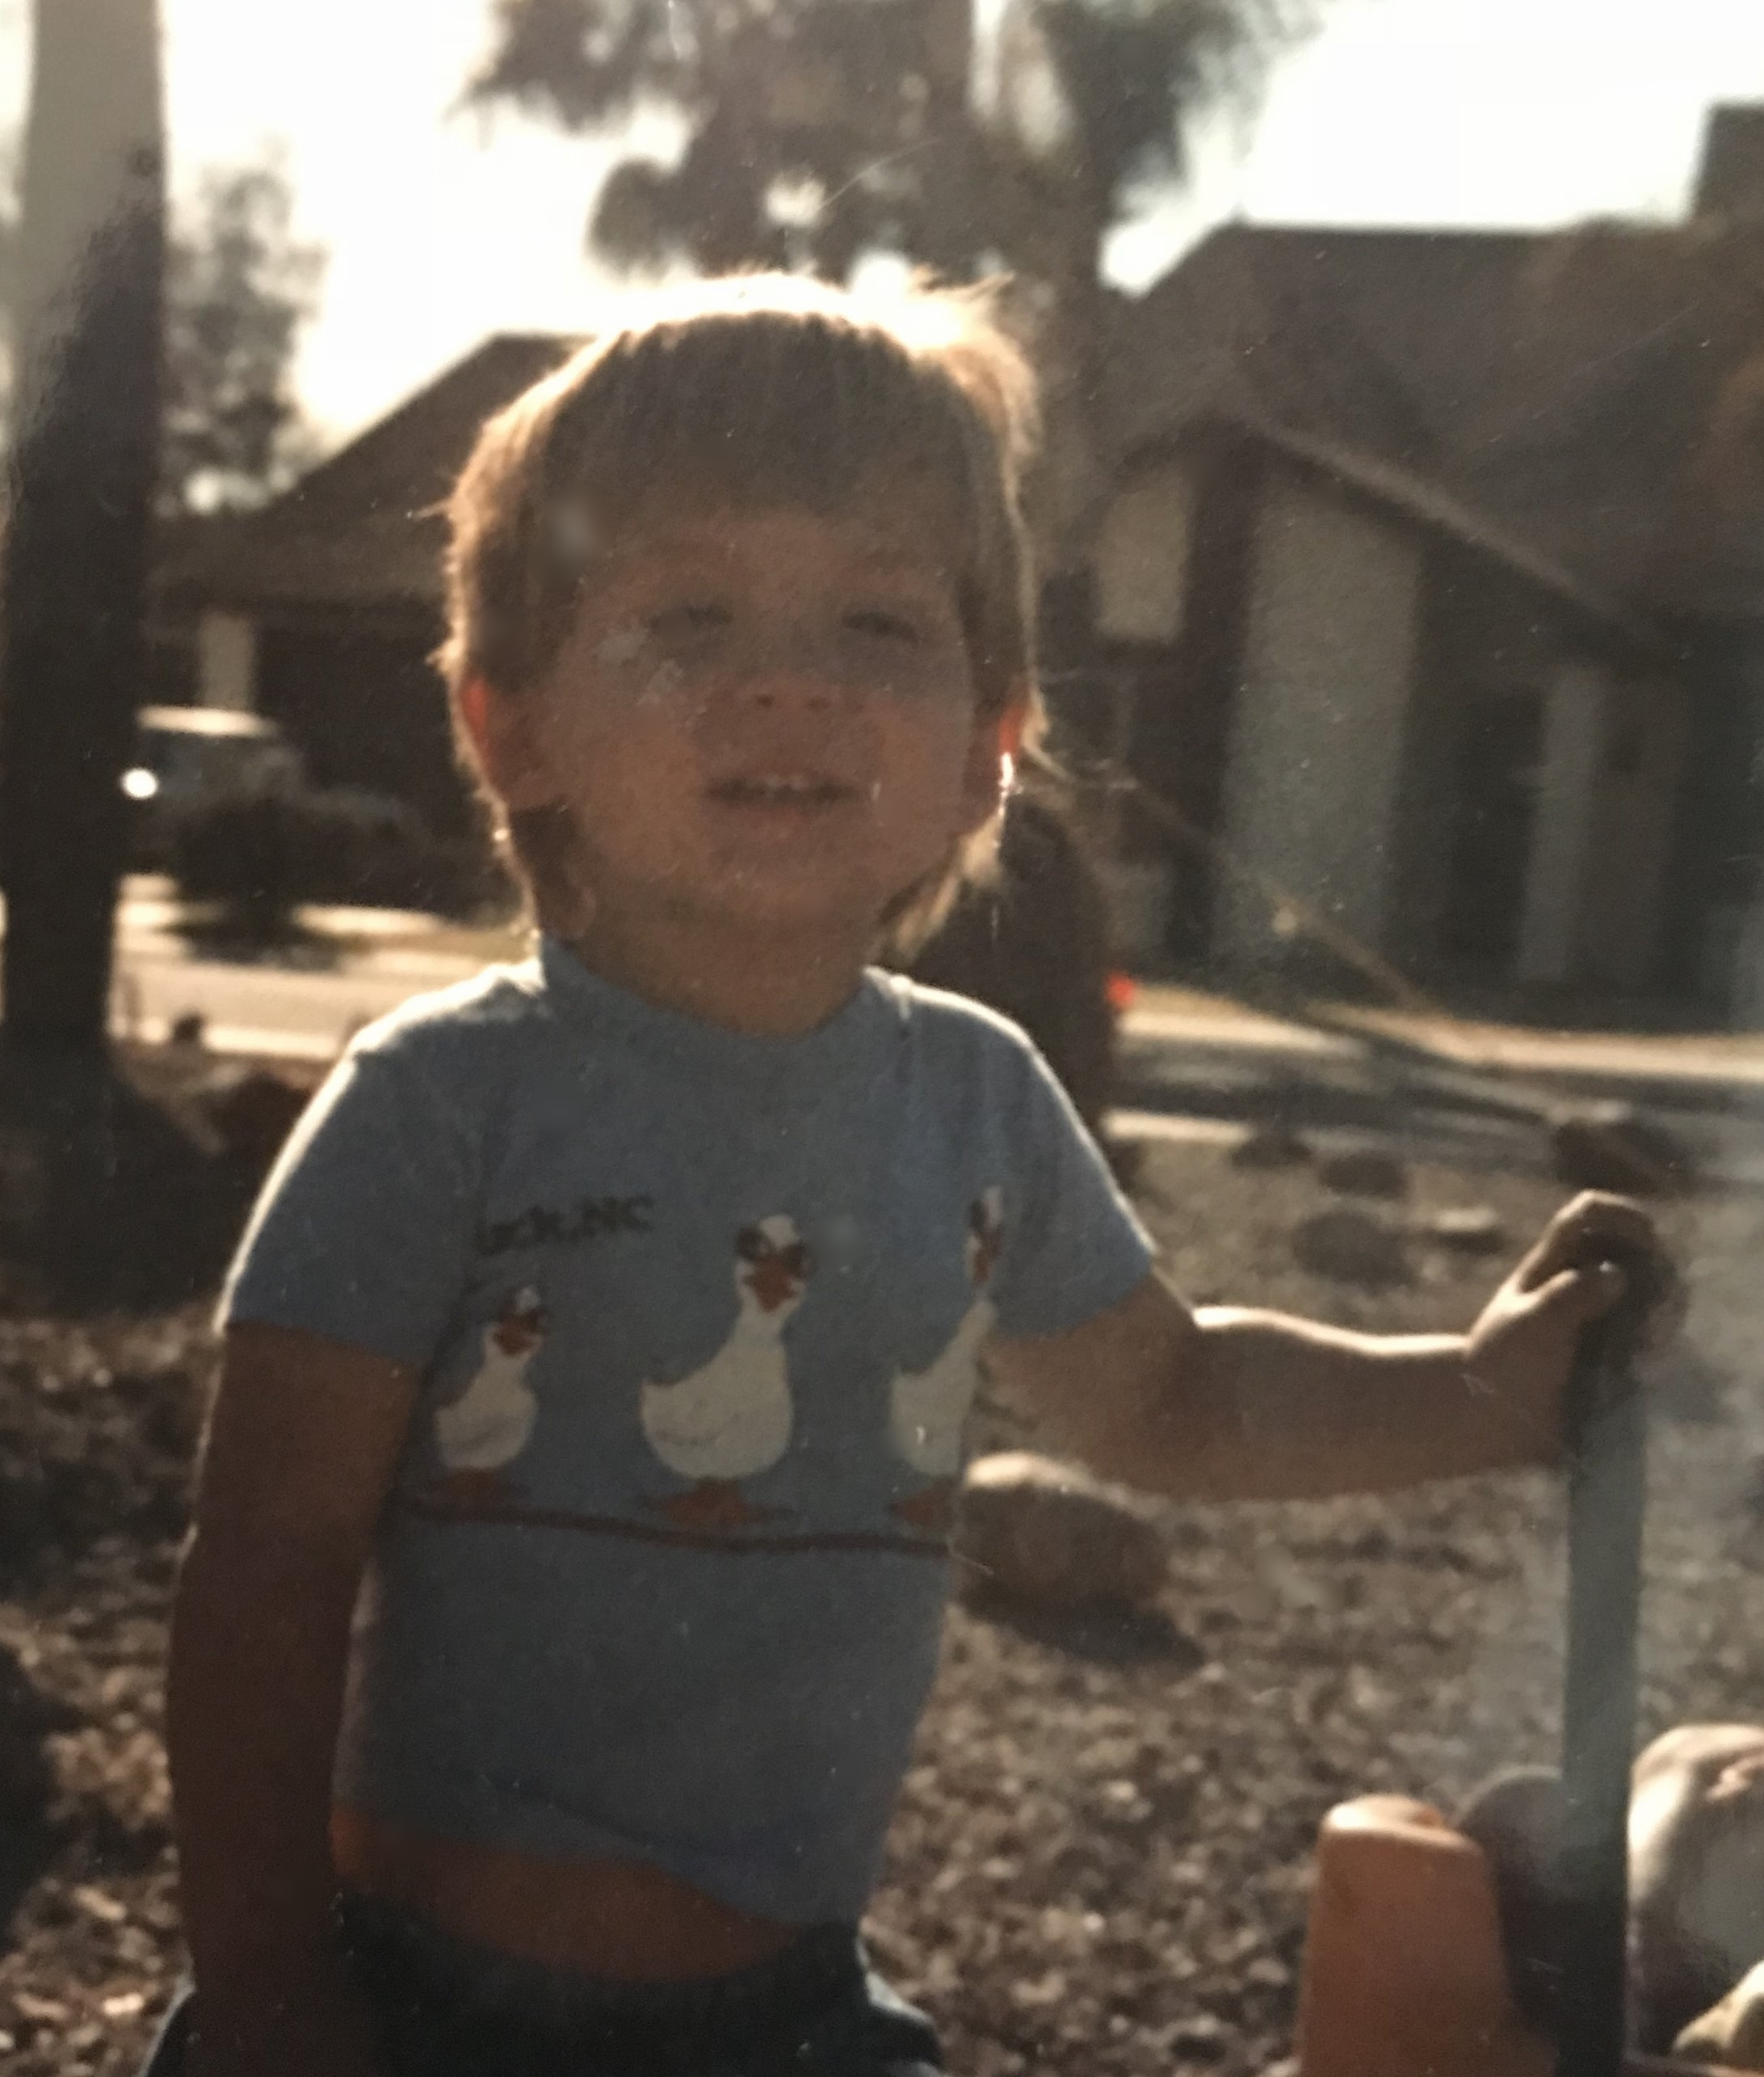 Richie is a born and raised Arizonan, raised in the blistering heat of Phoenix. -